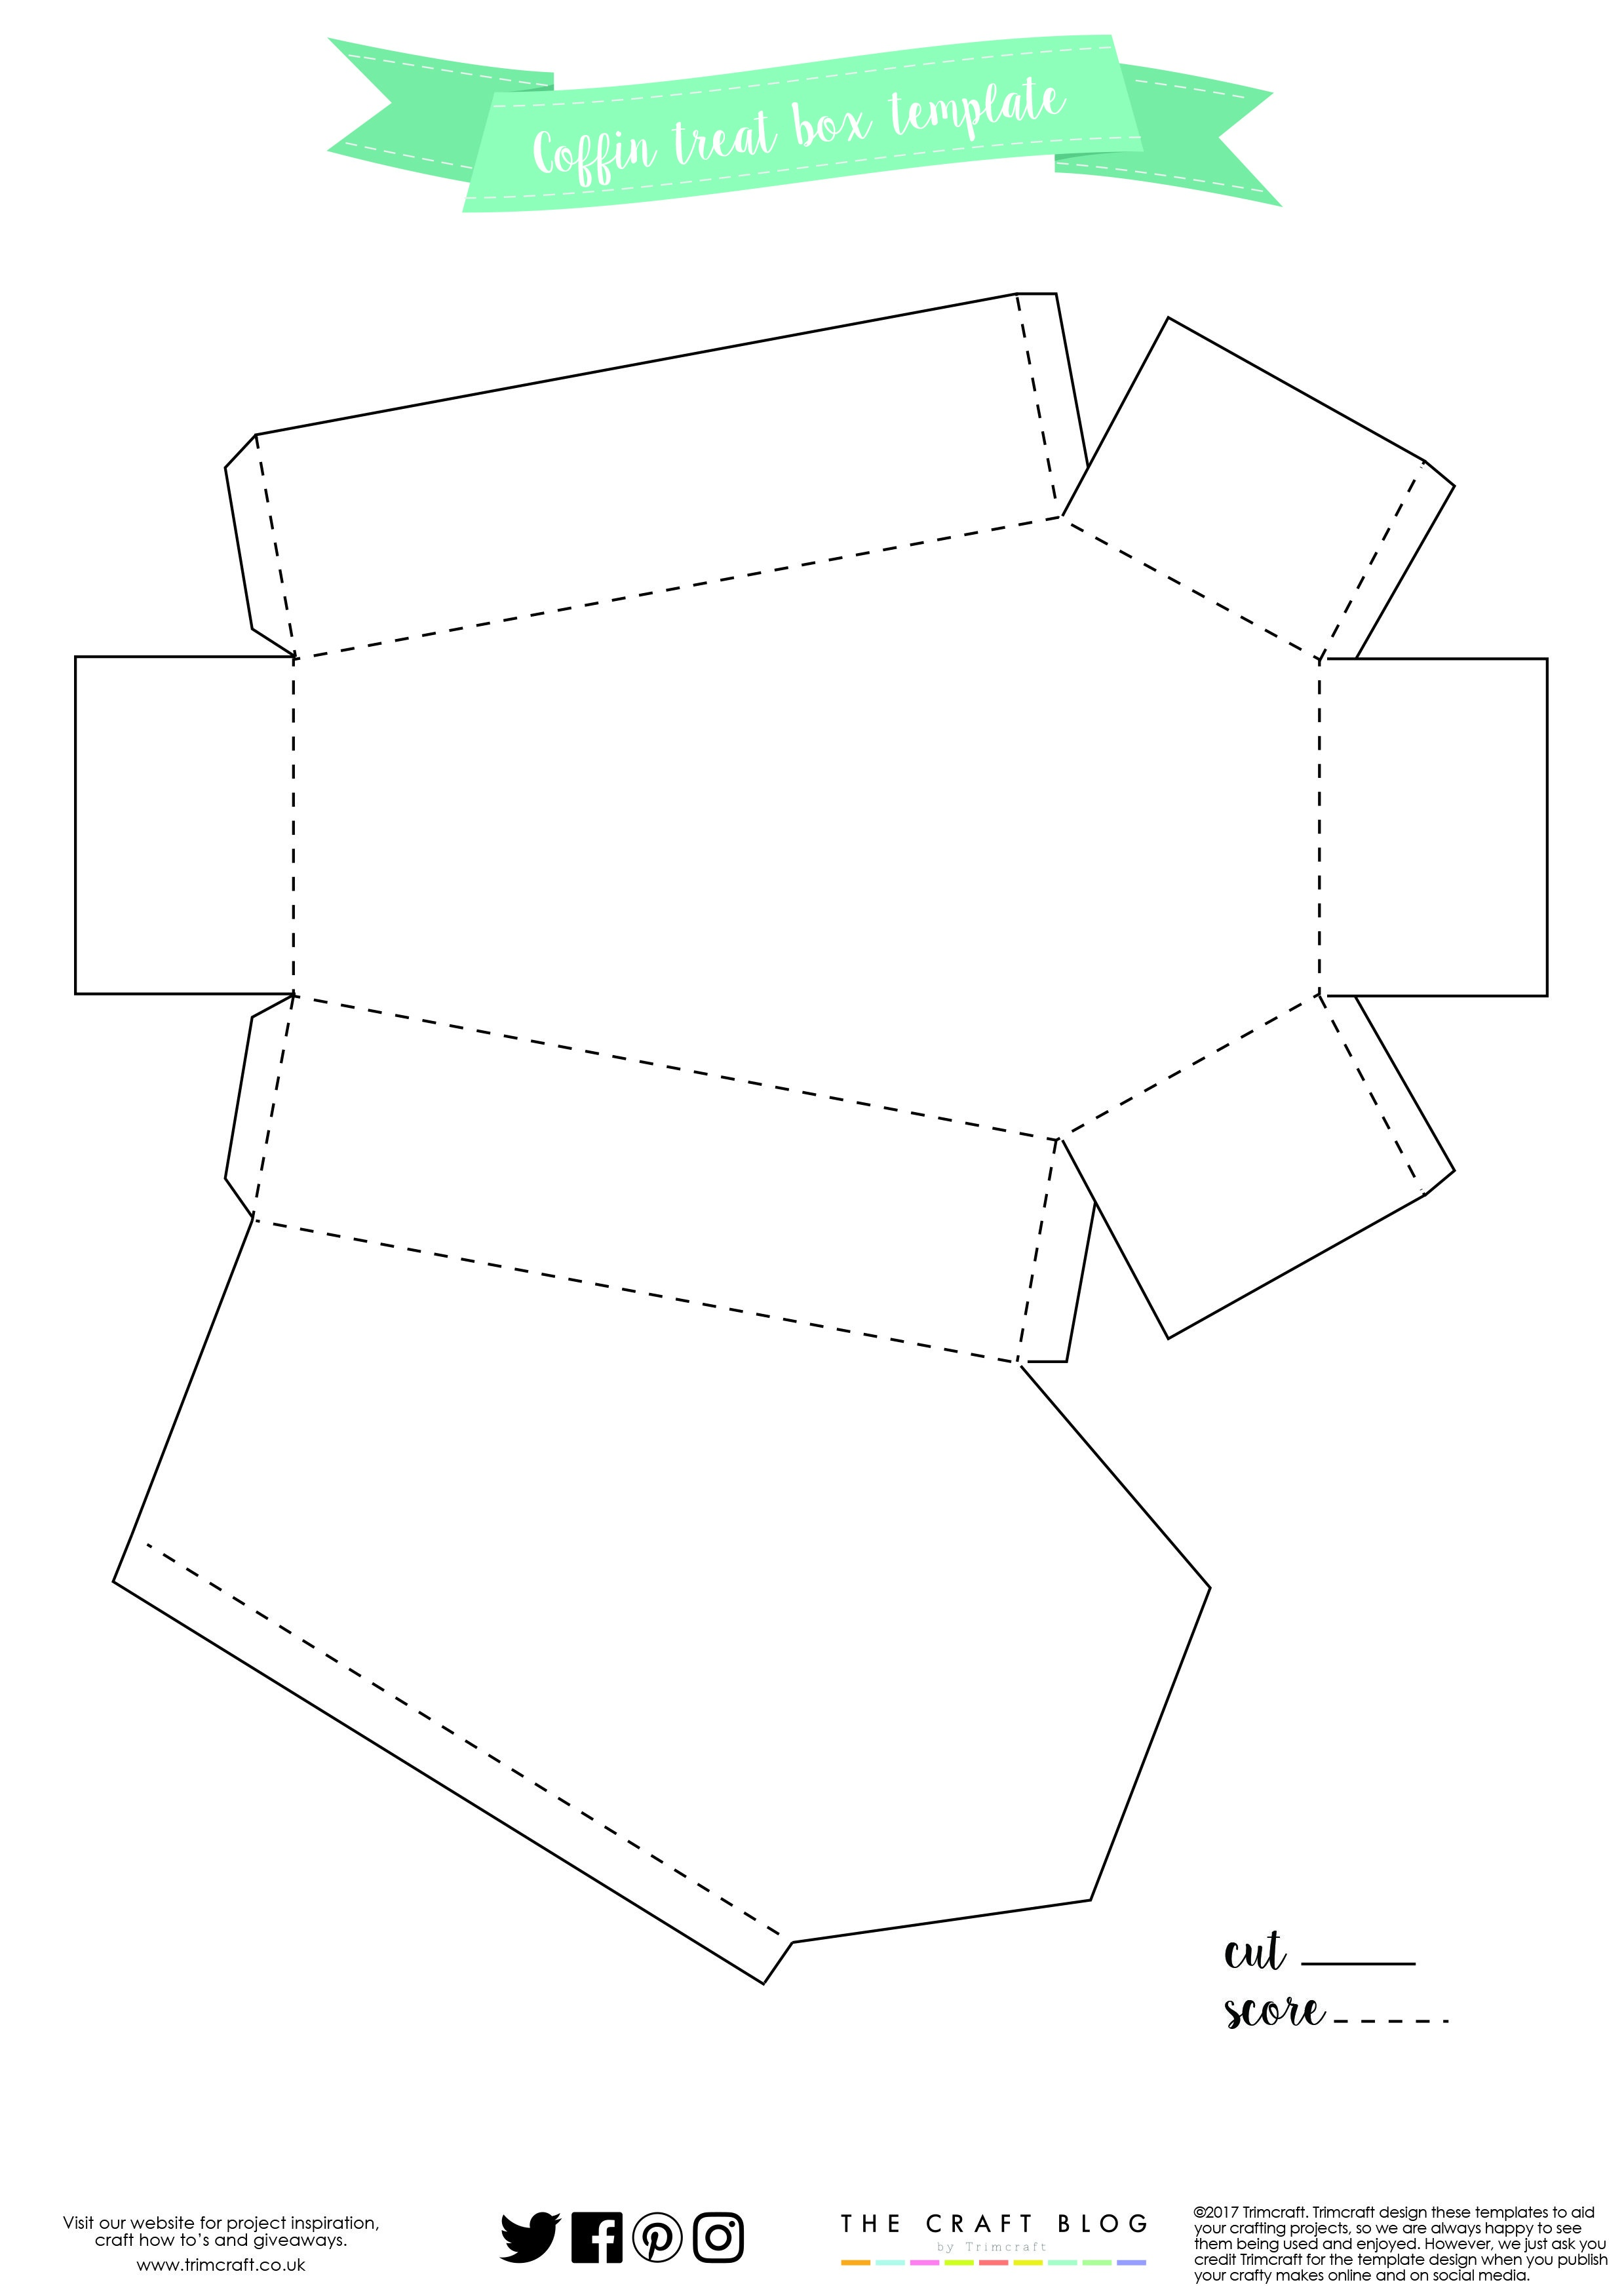 Beaufiful Coffin Template Images Gallery. Coffin. Coffin Box - Free Printable Sarcophagus